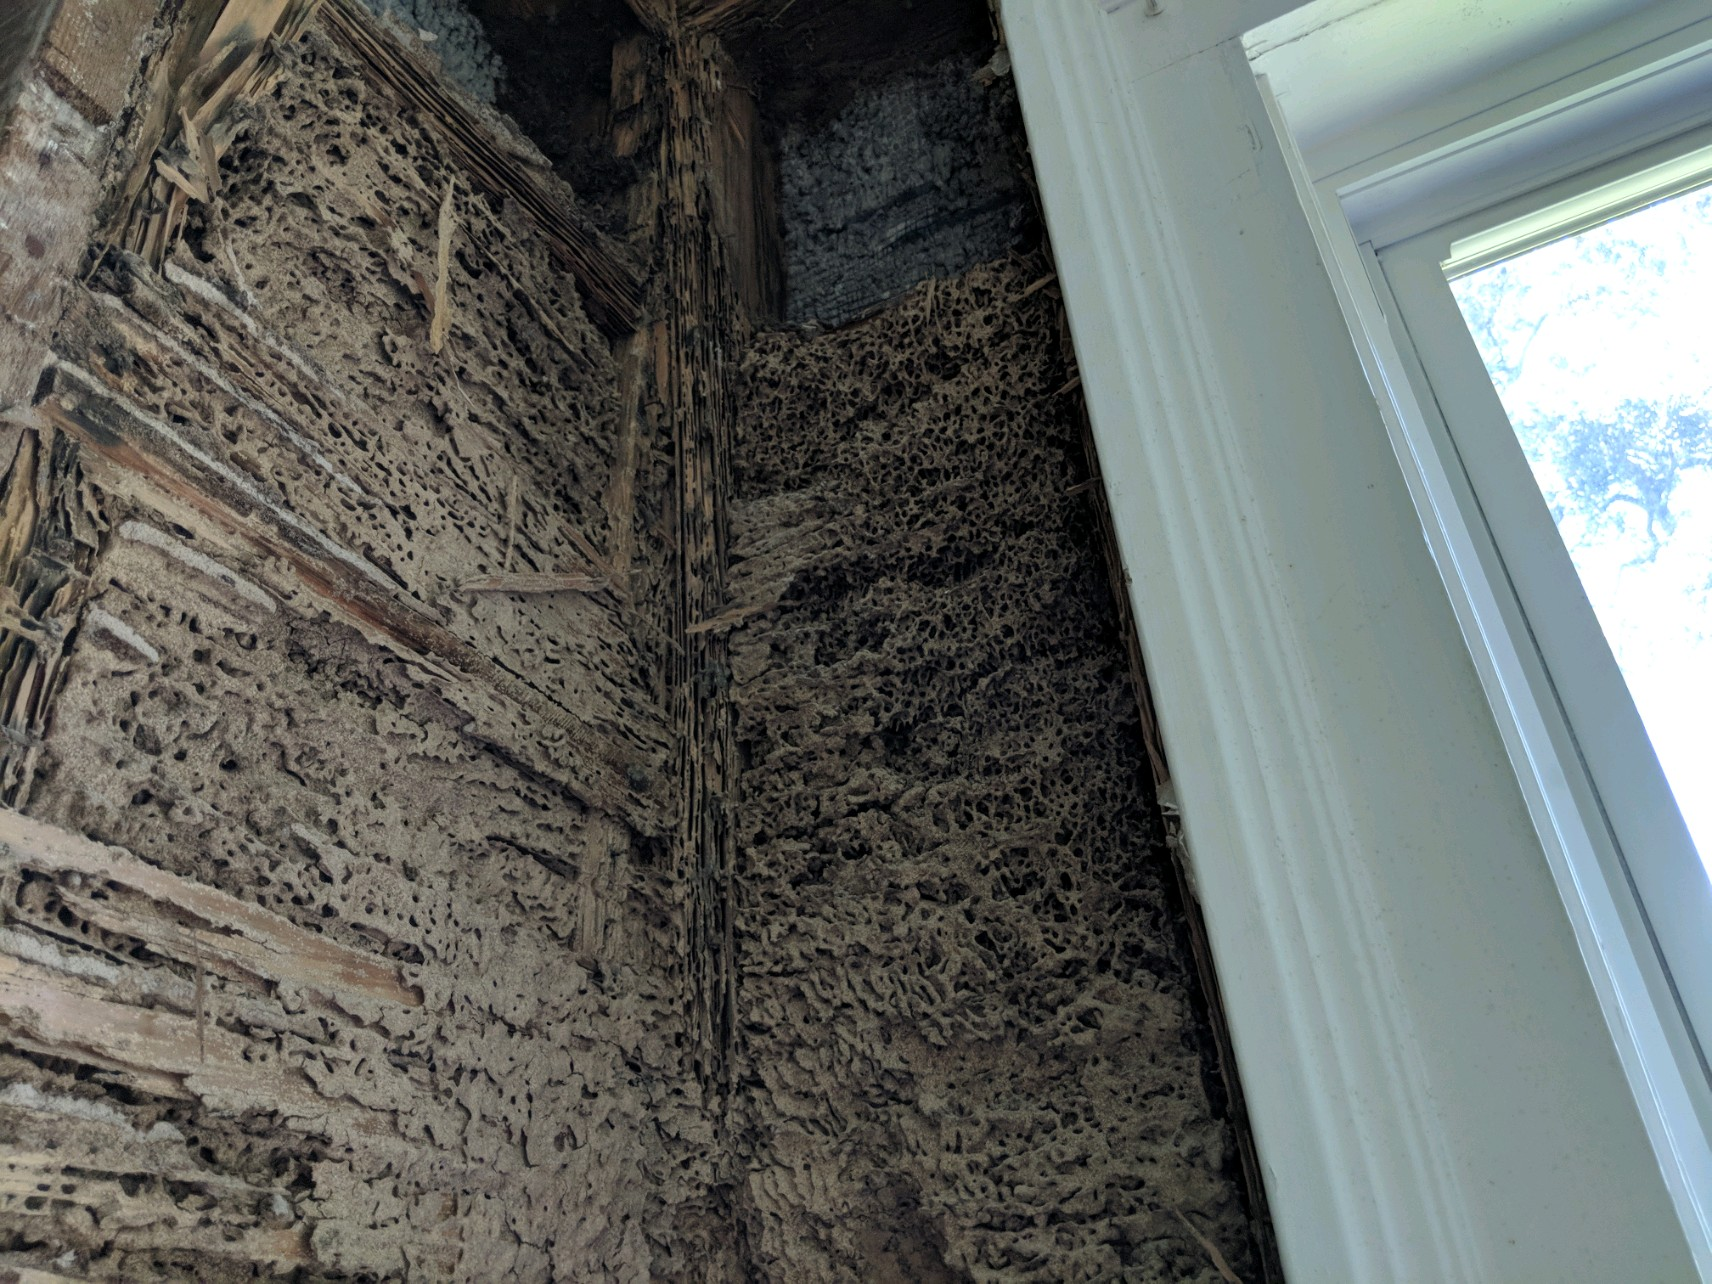 Large Formosan termite nest inside the wall of a residential New Orleans home. Formosan termites can build nests both above and below ground. Above ground, these nests are called cartons